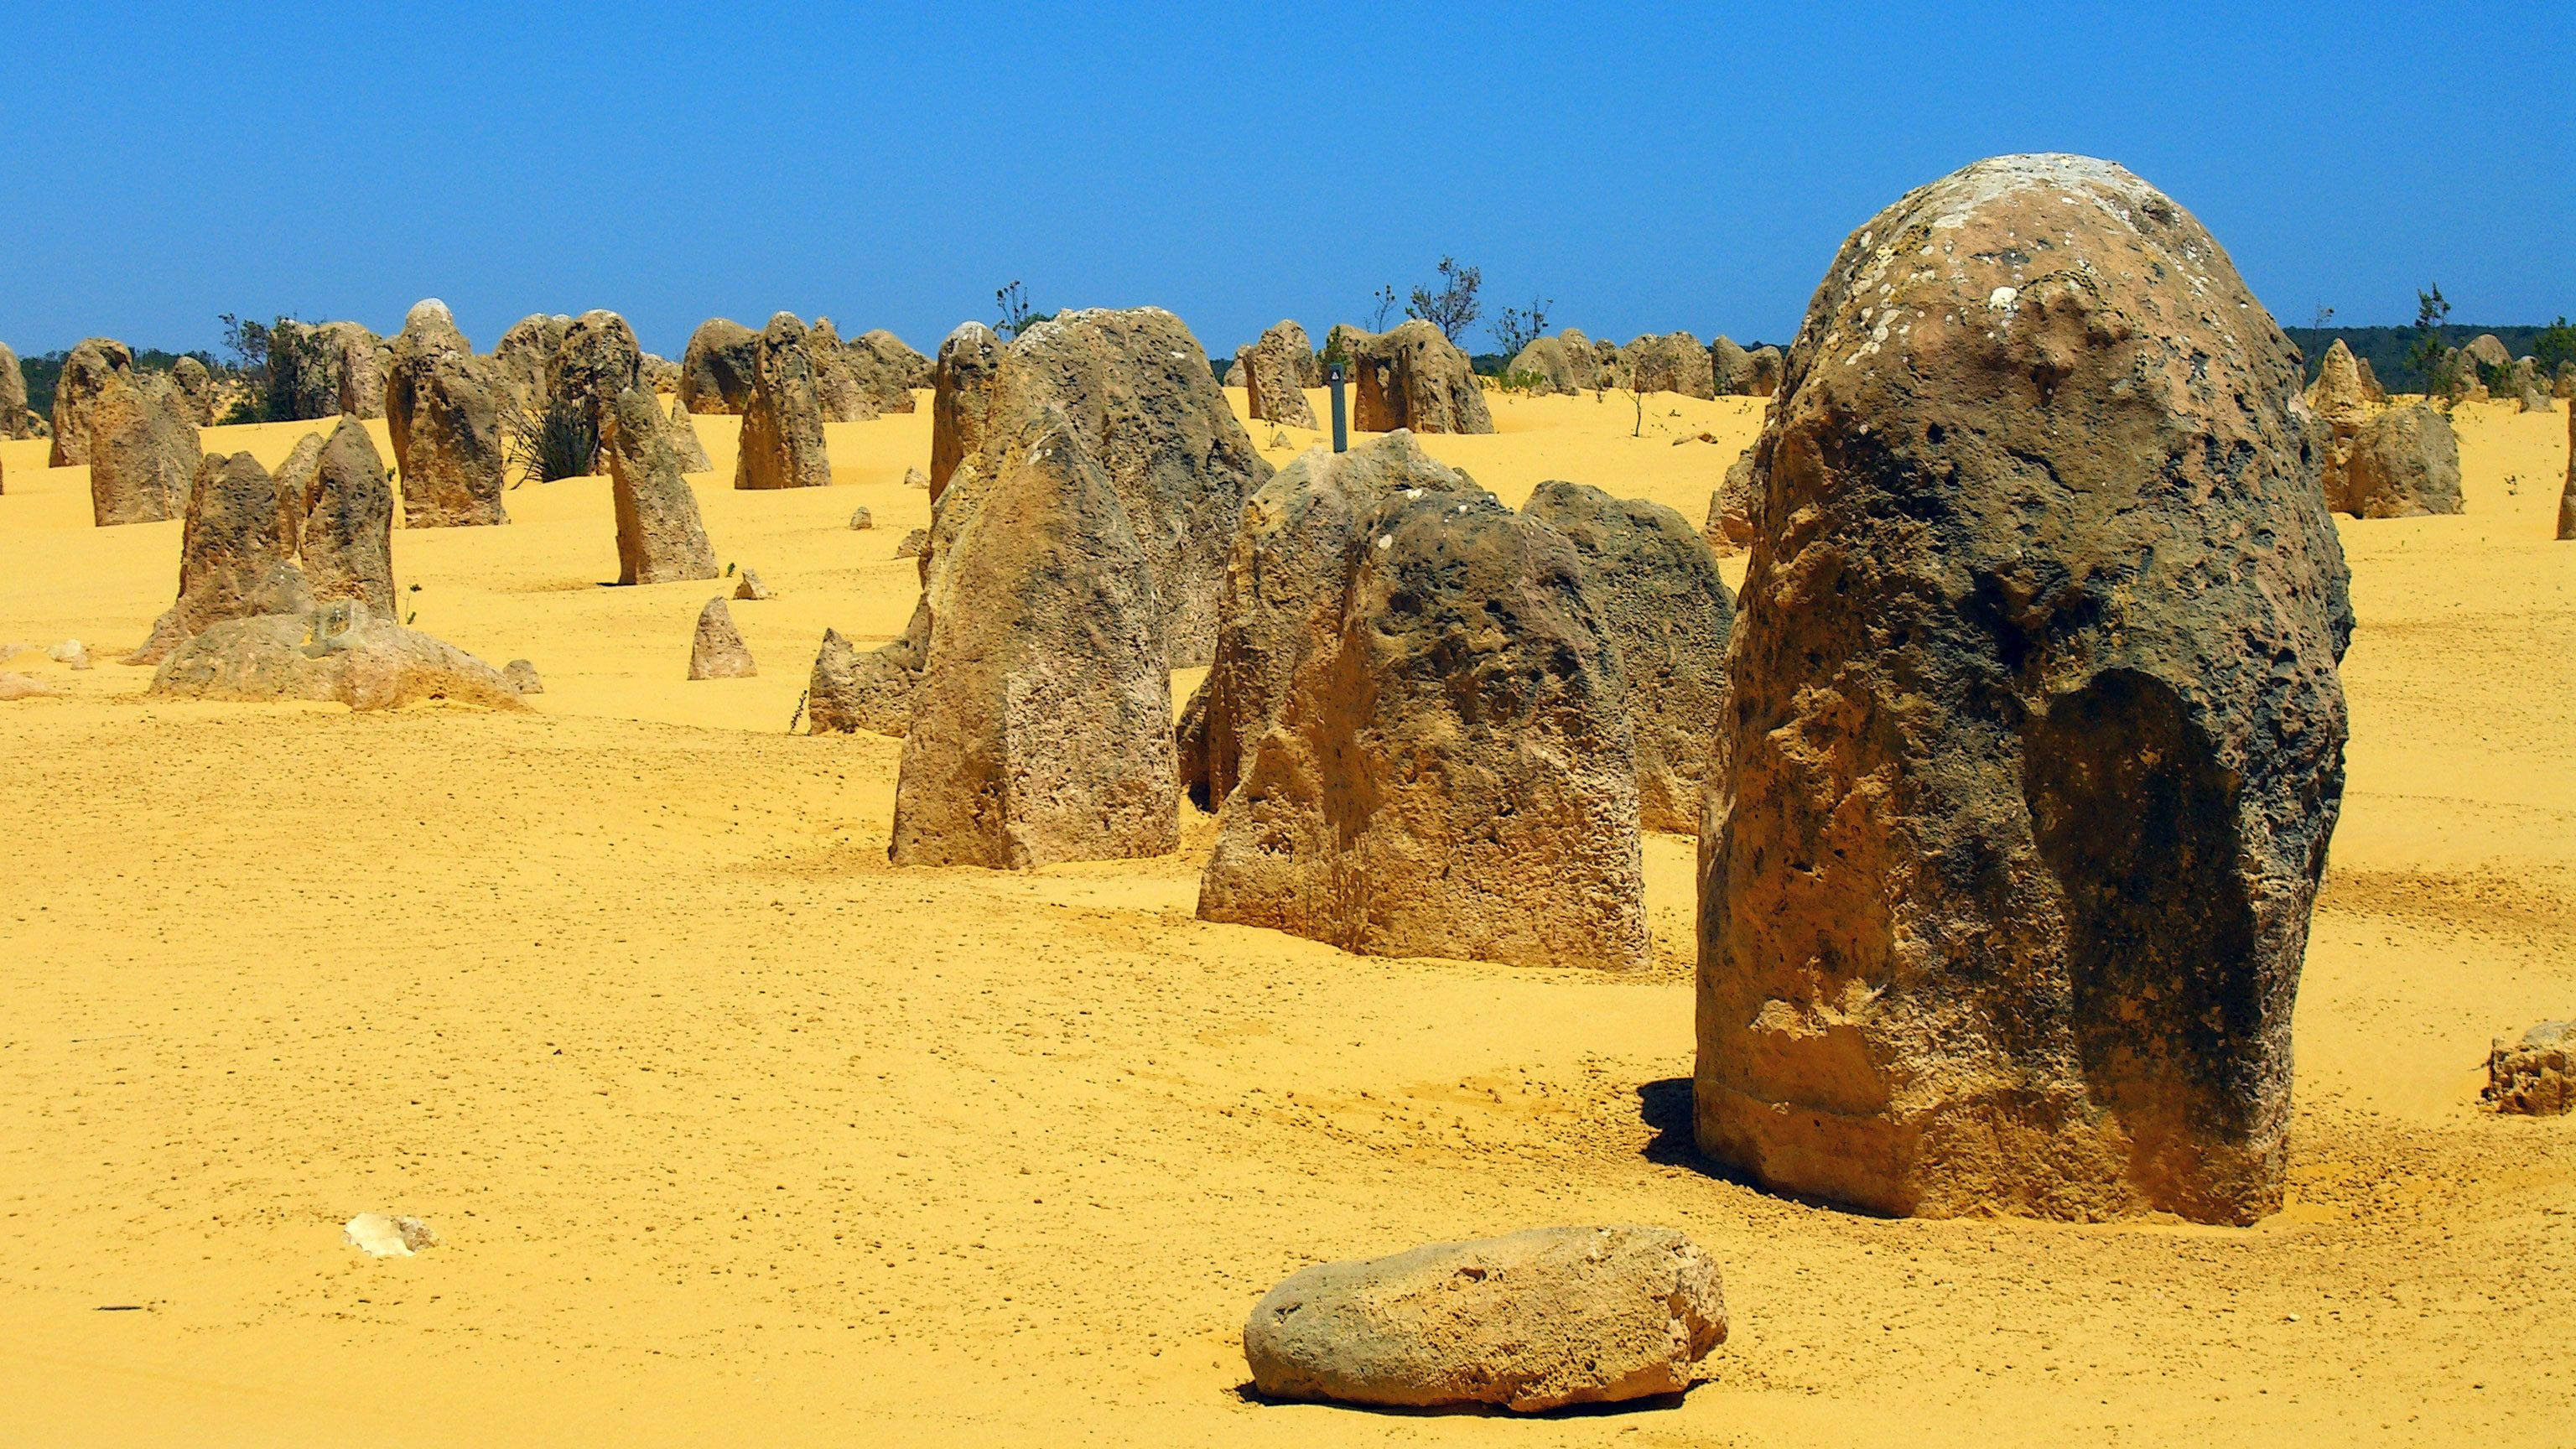 Rock formations in the Pinnacles desert